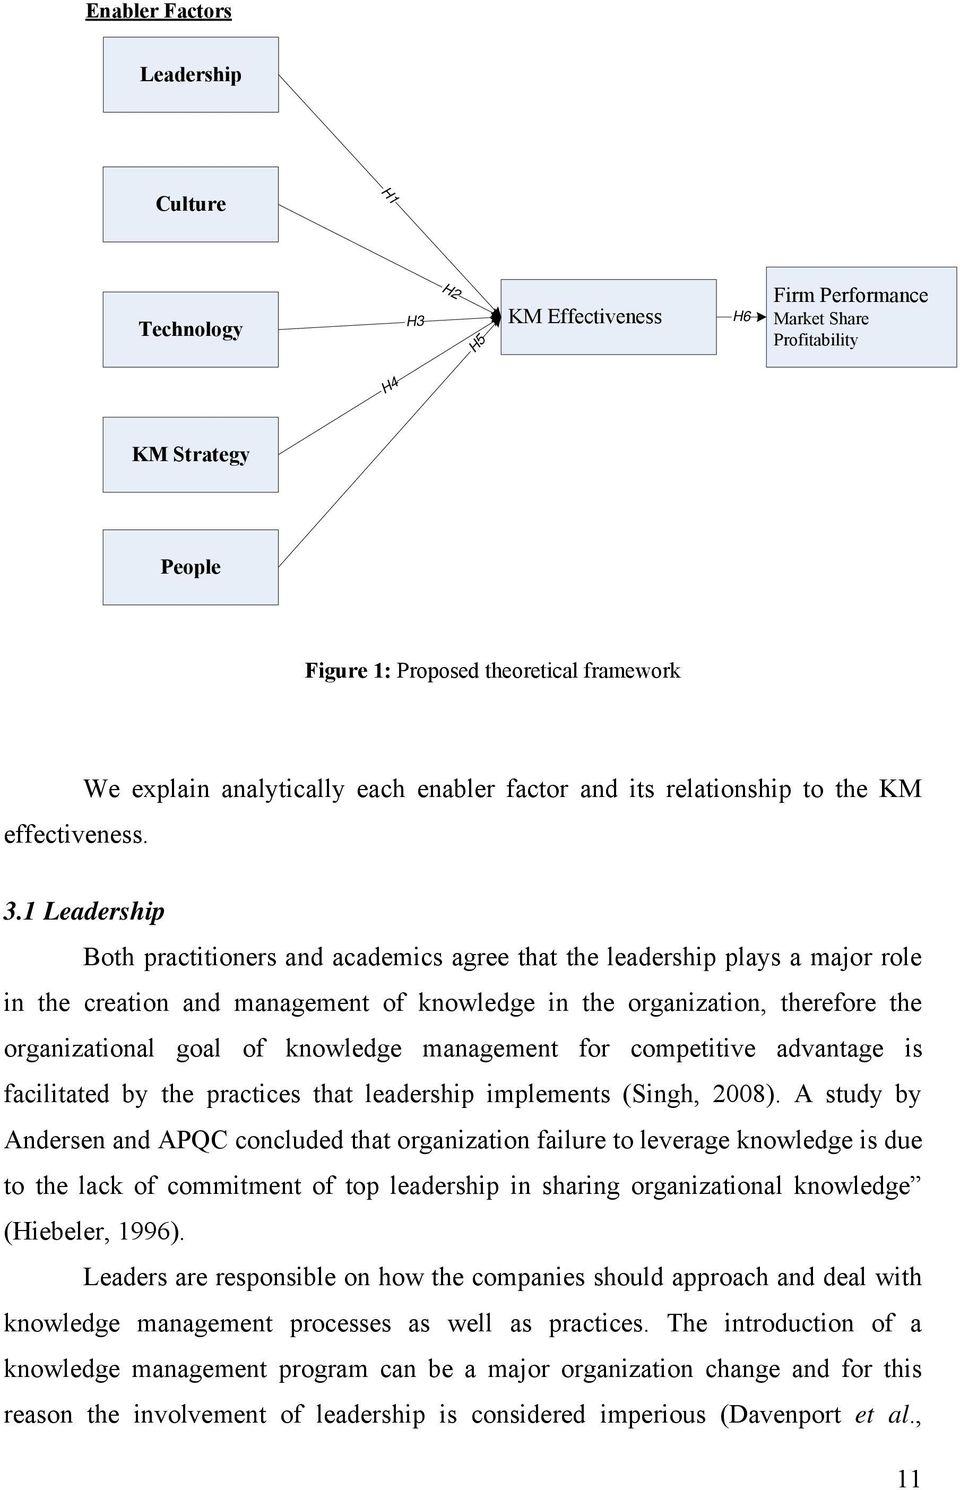 1 Leadership Both practitioners and academics agree that the leadership plays a major role in the creation and management of knowledge in the organization, therefore the organizational goal of